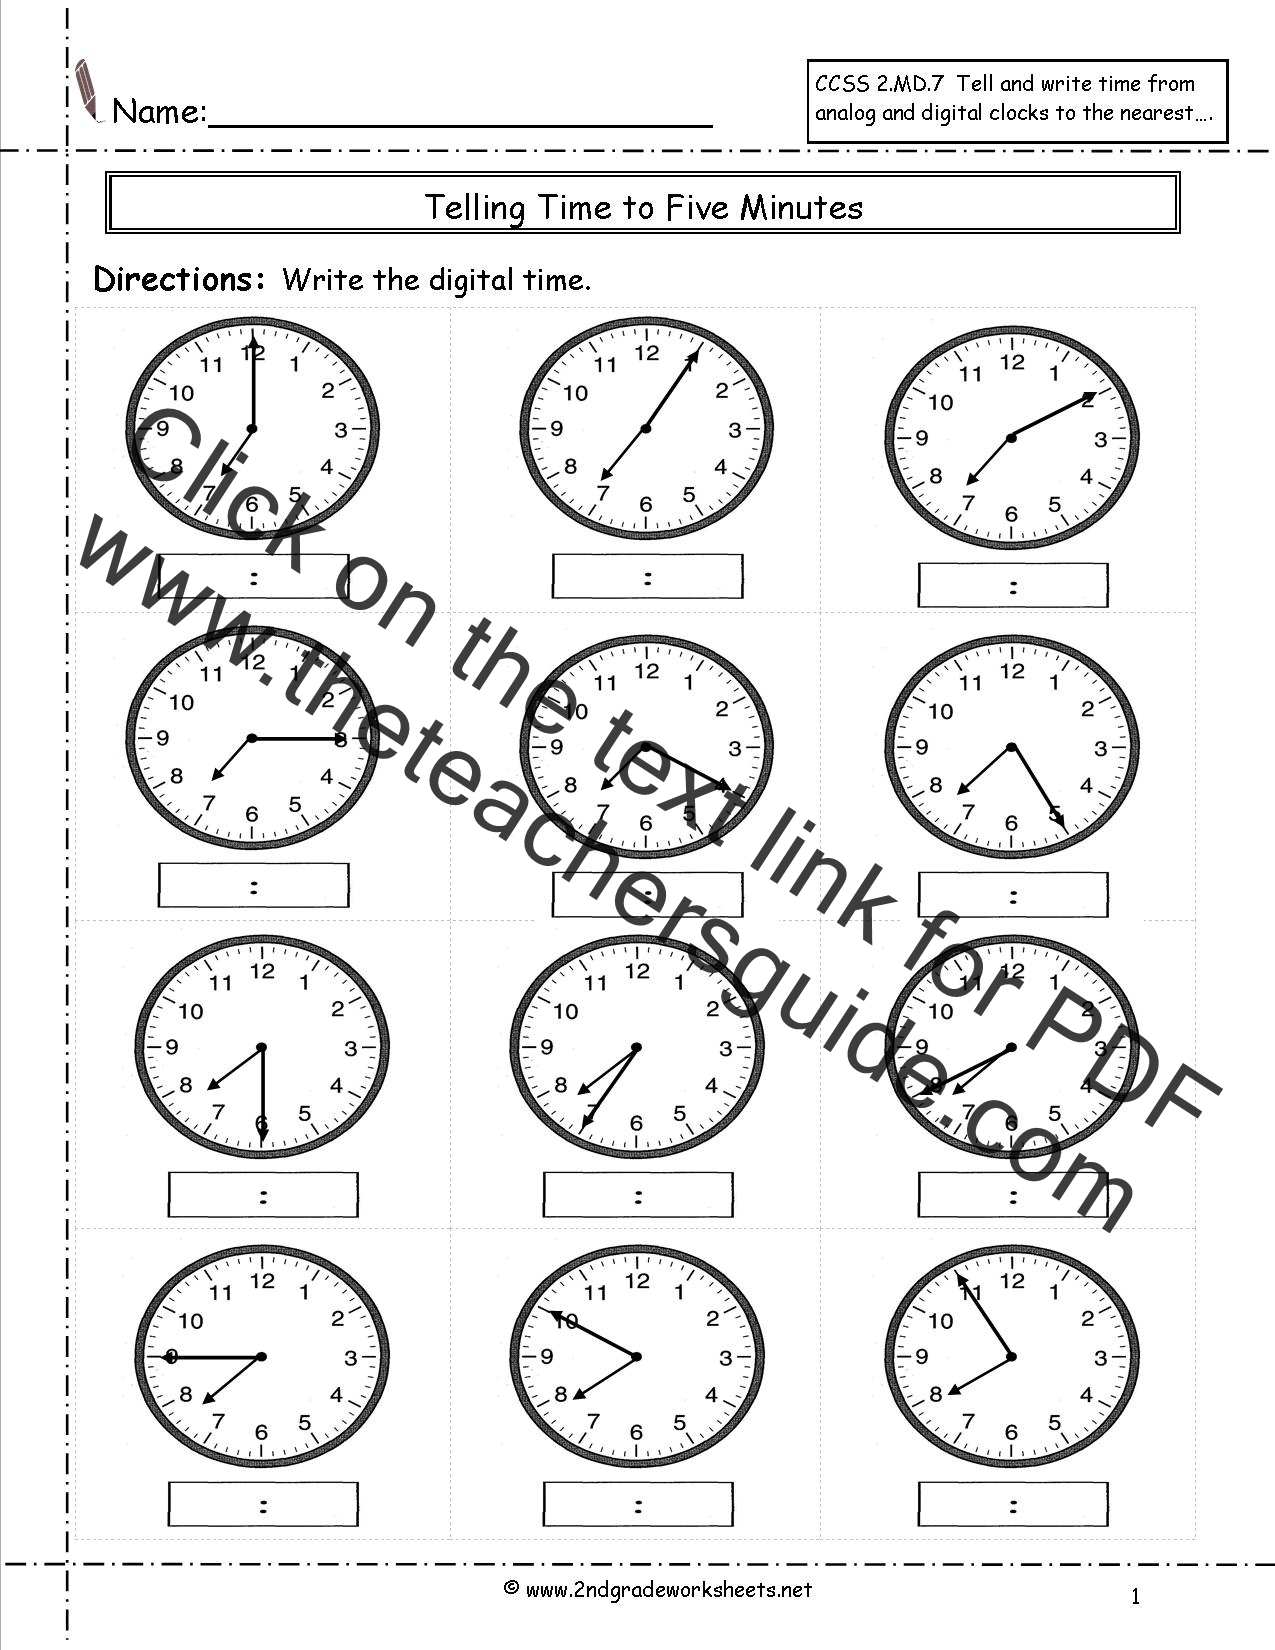 Clock+Worksheets+Grade+2 Pin Telling Time Worksheets 3rd Grade on ...